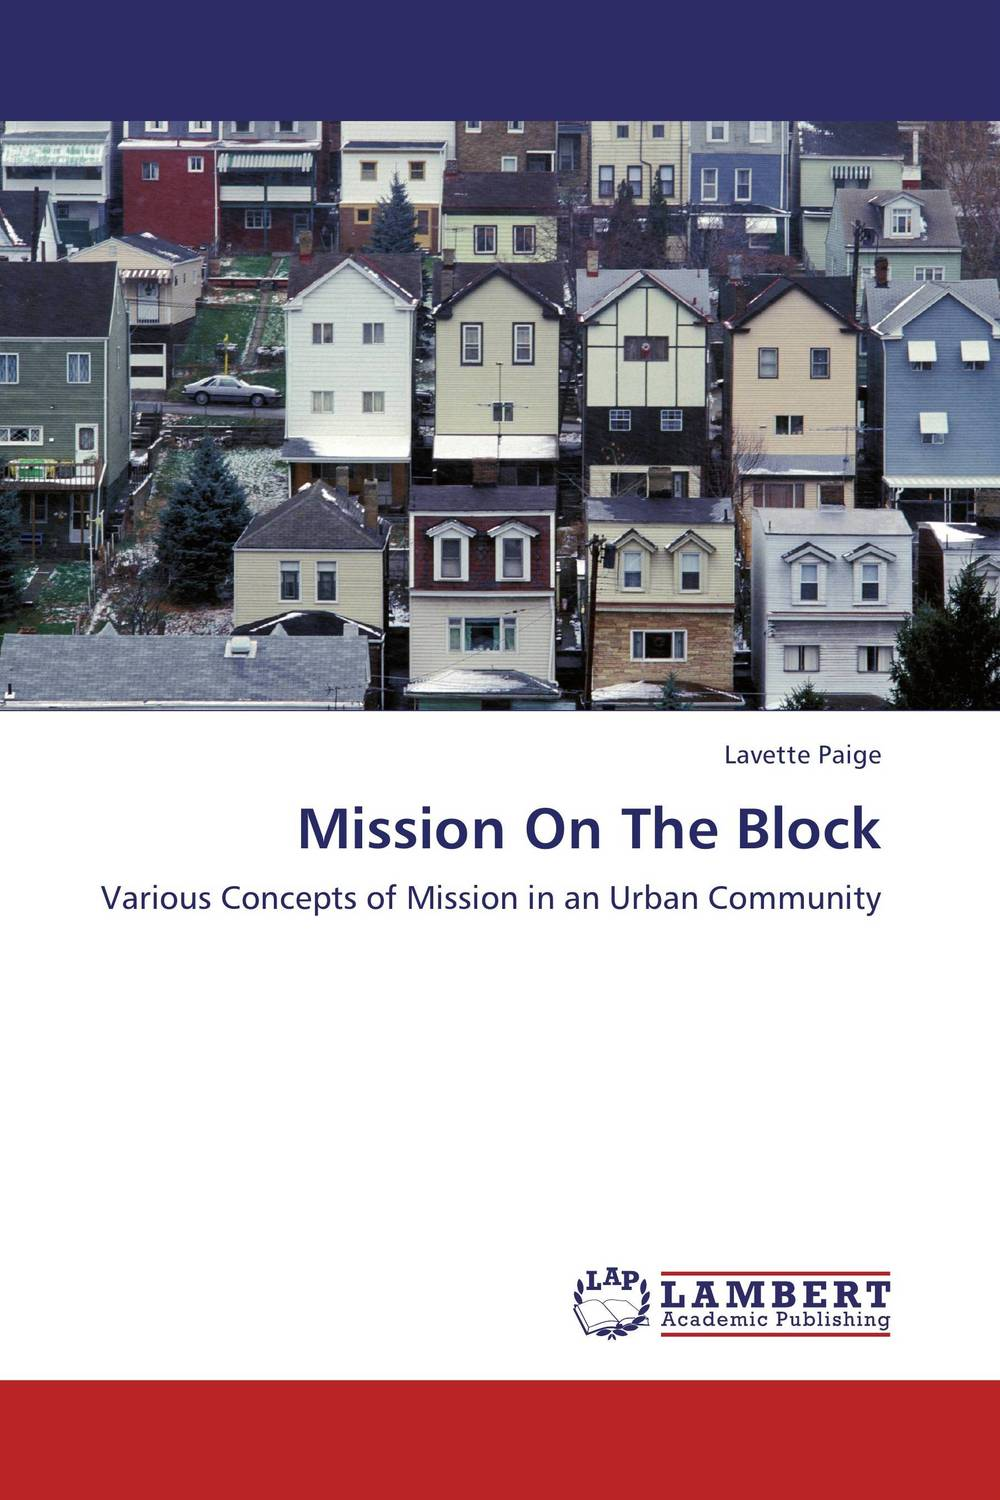 Mission On The Block on my own